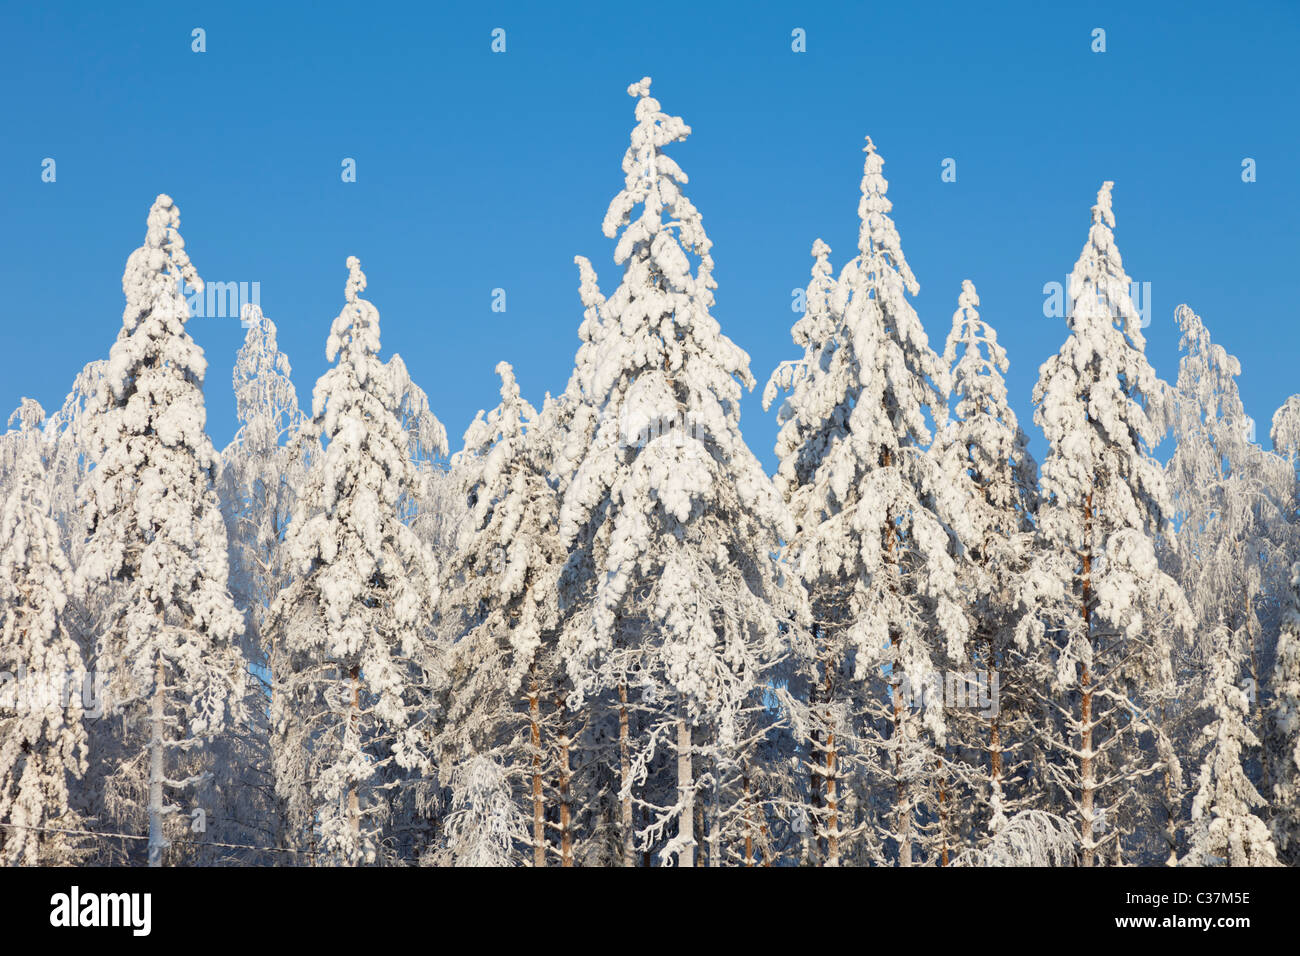 View of snow covered spruce ( Picea Abies ) and pine ( Pinus Sylvestris ) treetops in the forest , Finland - Stock Image